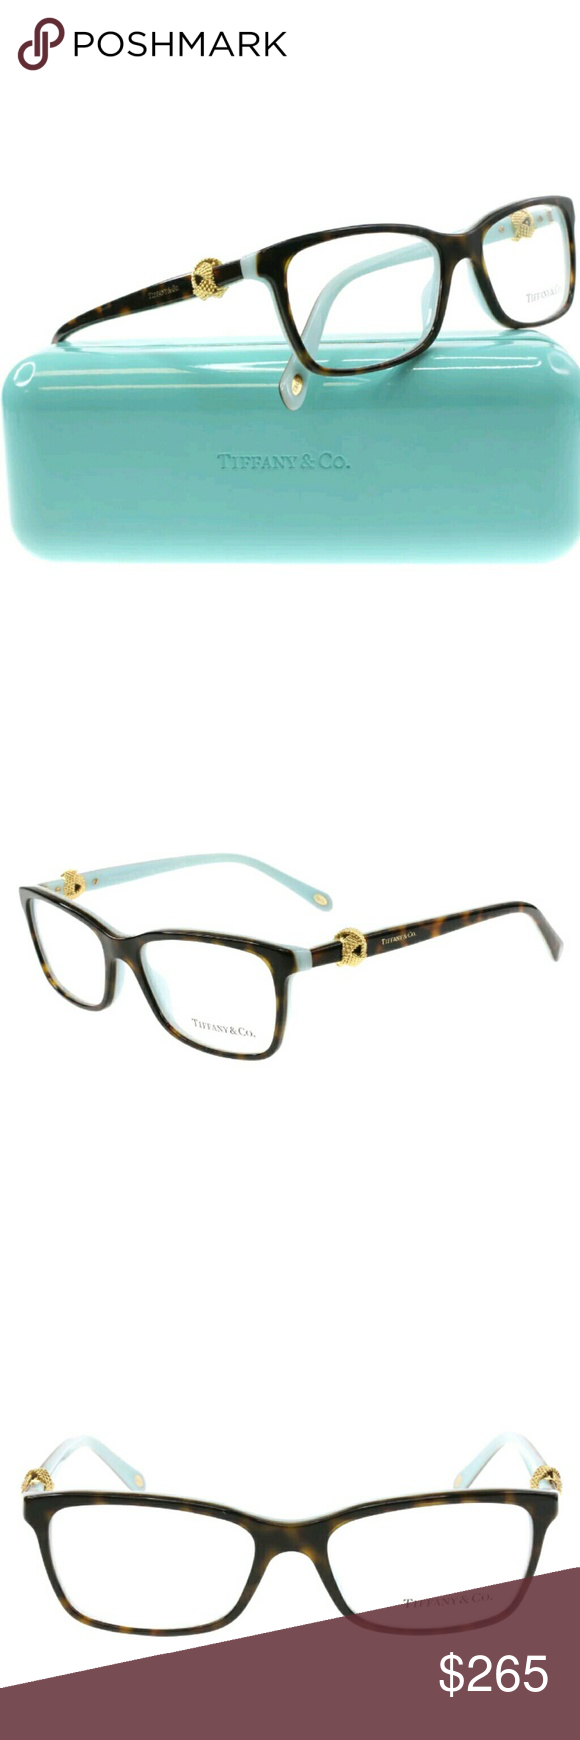 Tiffany & Co Eyeglasses New and authentic Brown and teal frame 53-16 ...